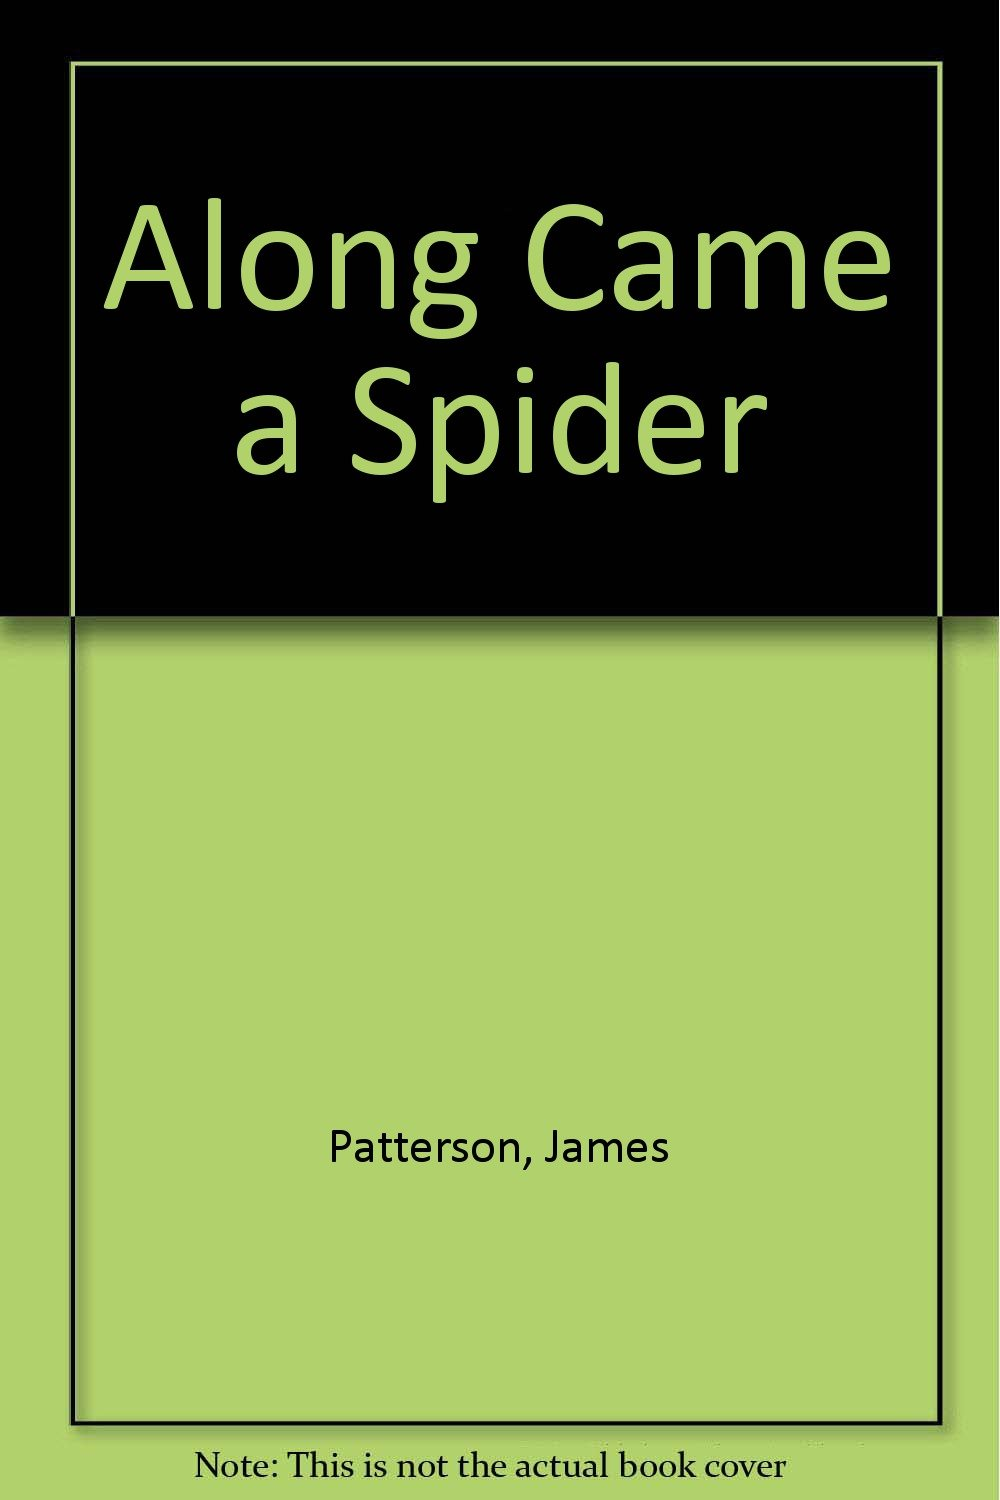 Along Came Spider James Patterson